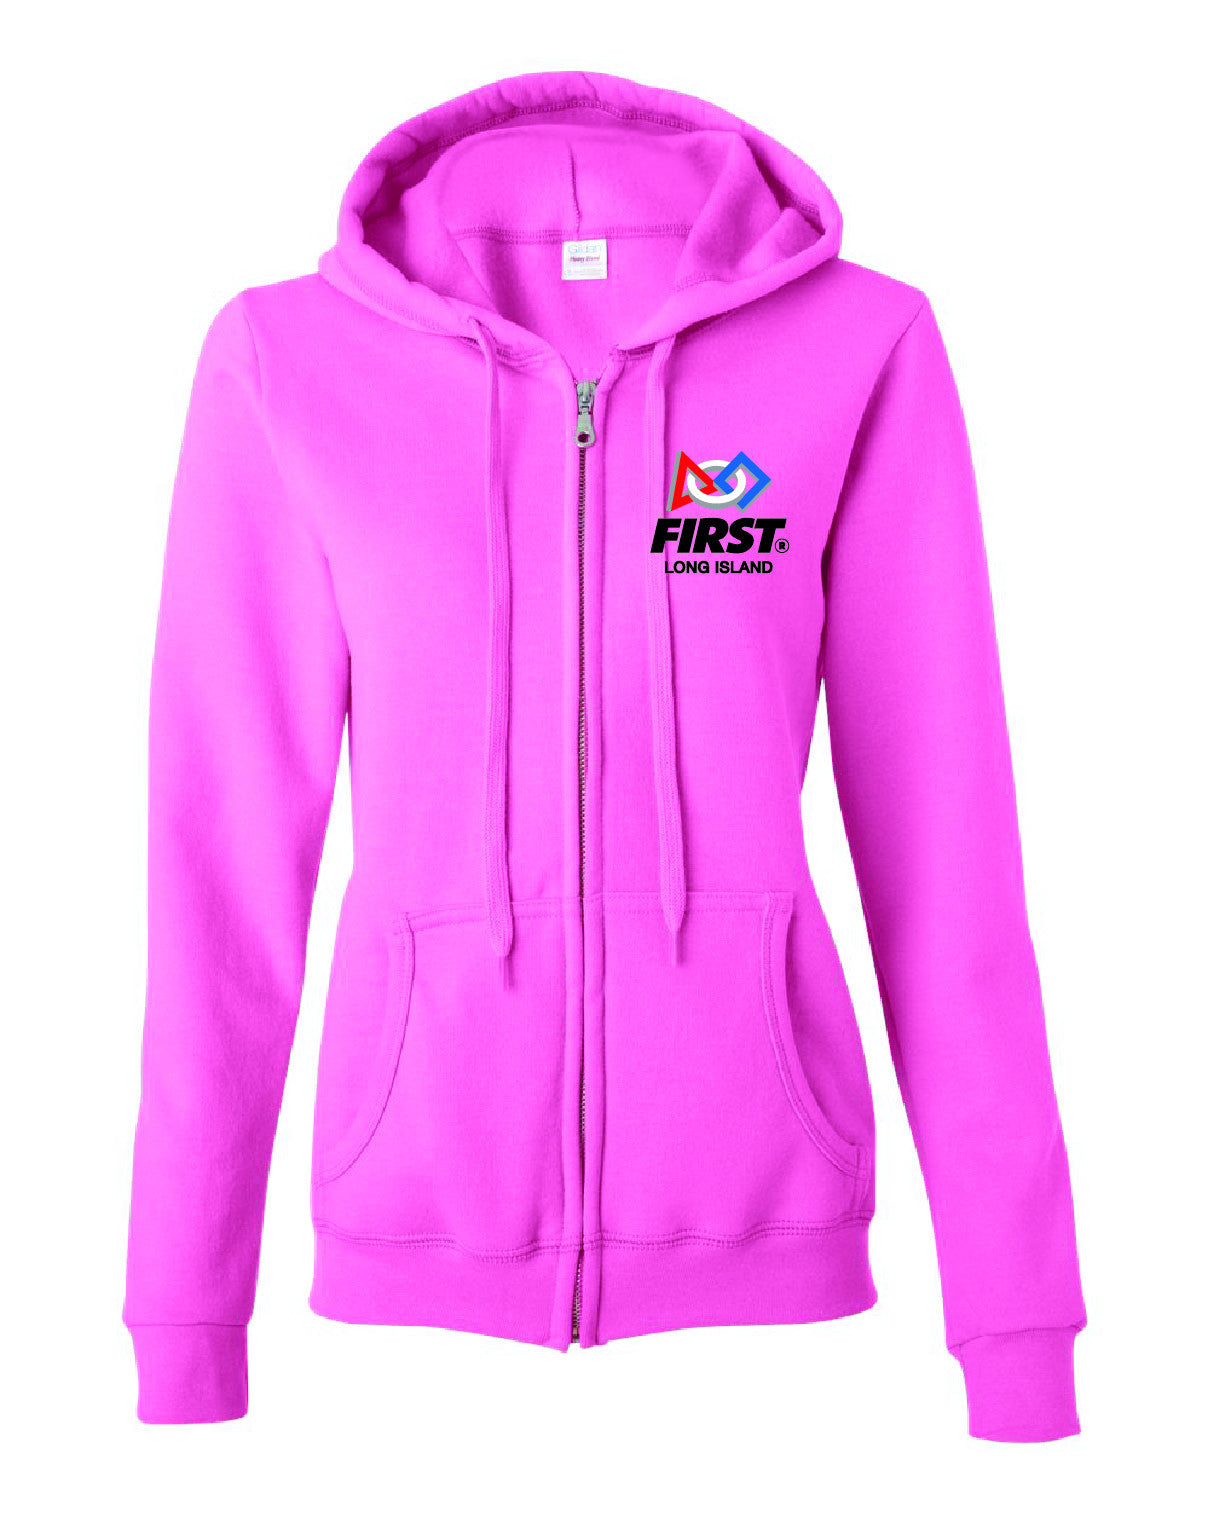 FIRST LI Heavy Blend WOMENS Full Zip Hooded Sweatshirt - 18600FL